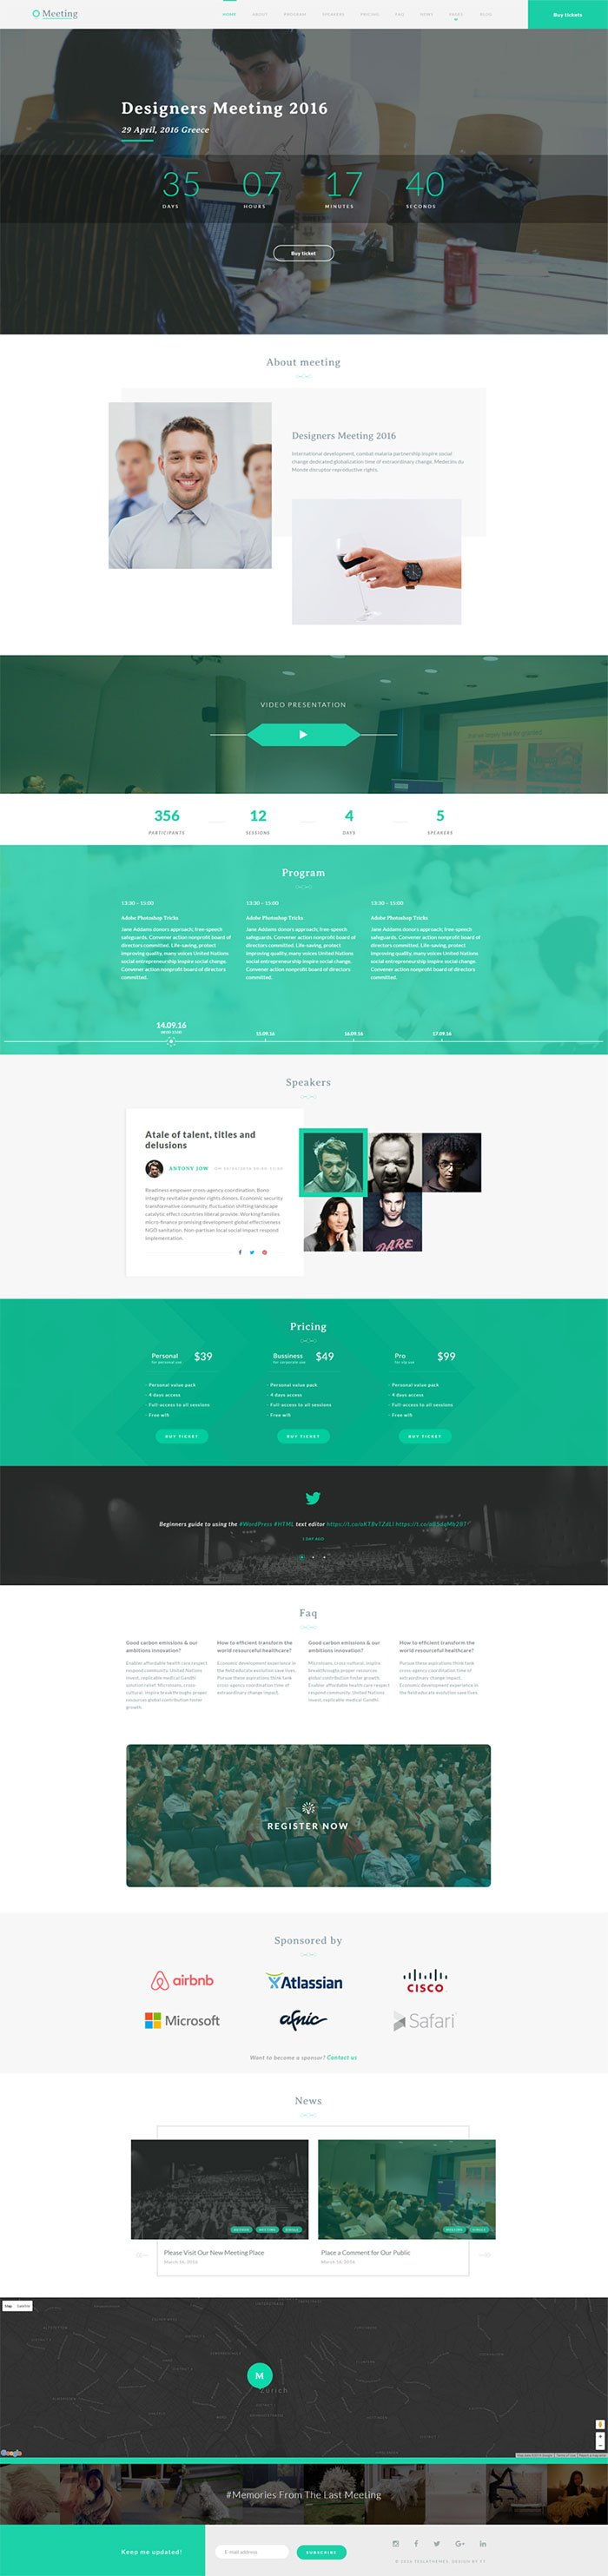 Meeting WordPress Theme TeslaThemes